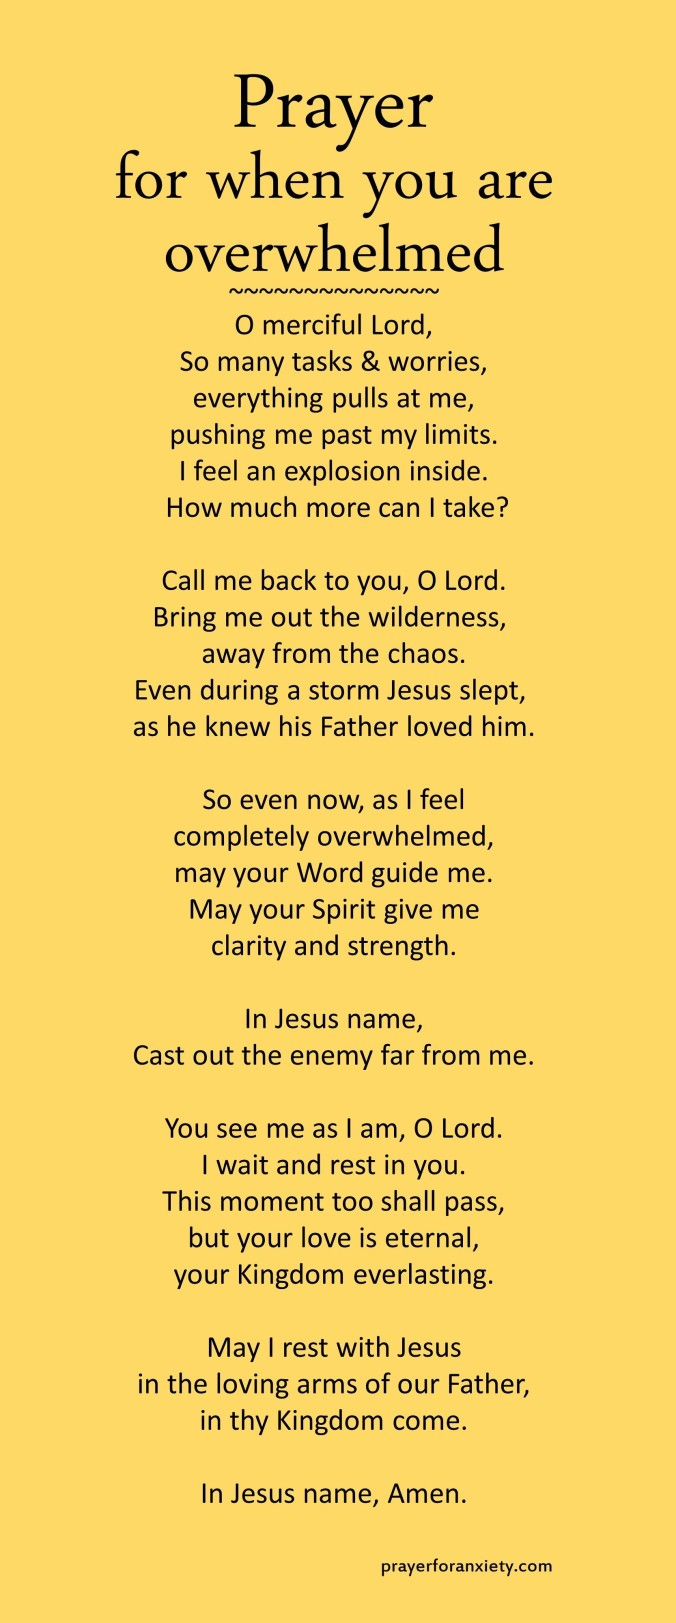 Prayer for when you are overwhelmed